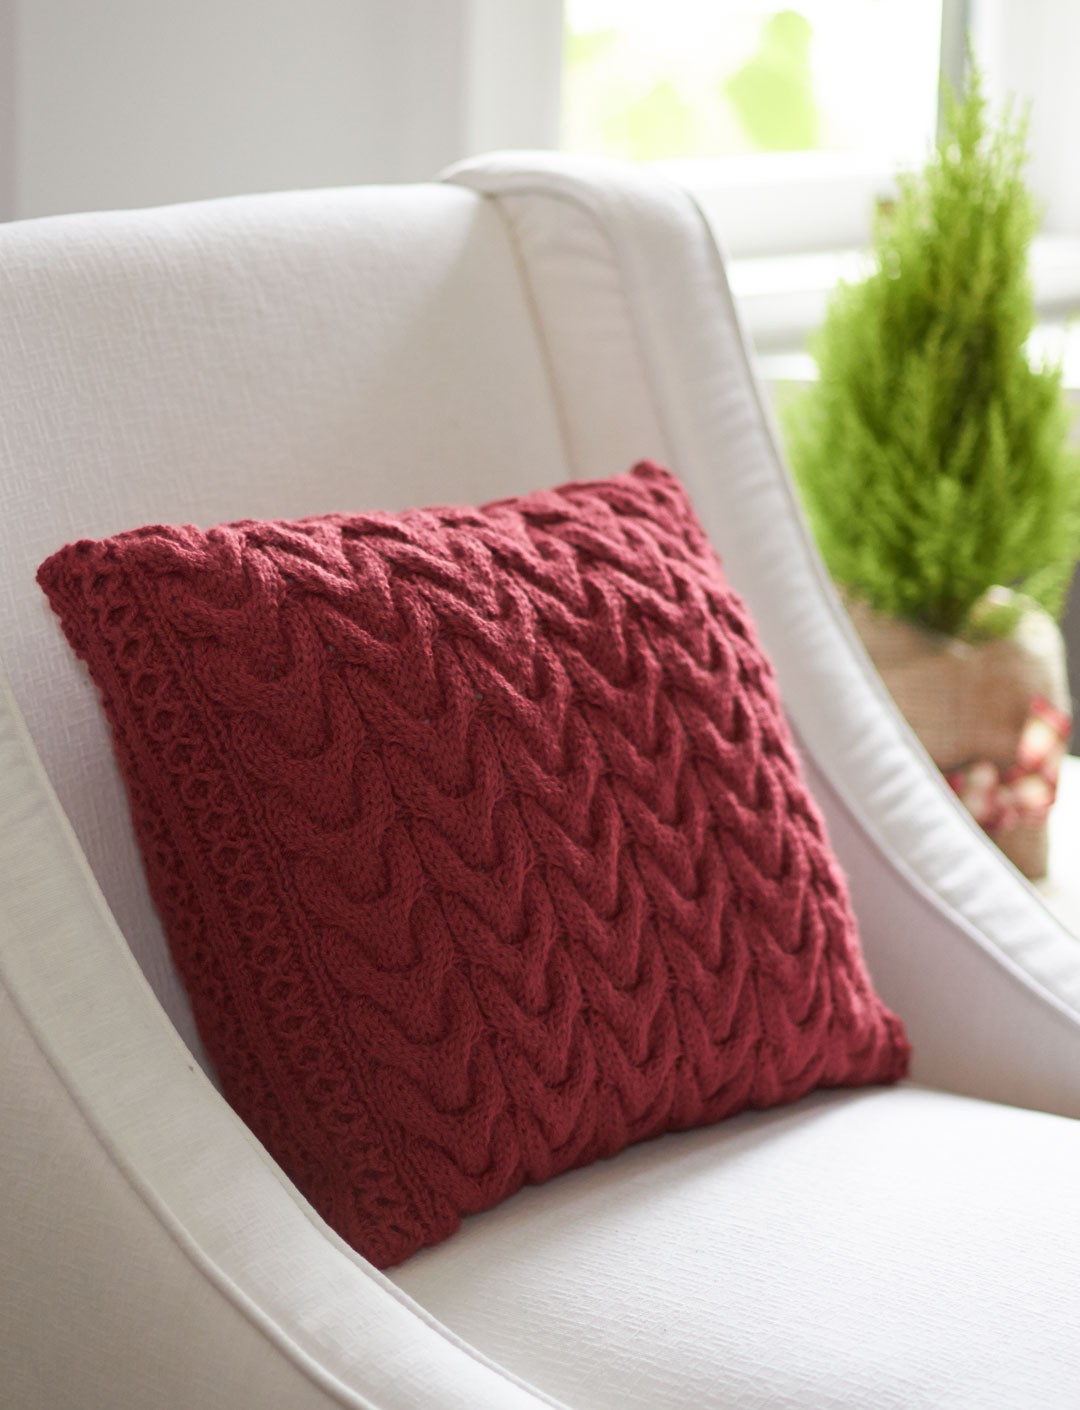 Cable Knit Pillow Pattern Free : Patons Christmas Cables Pillow, Knit Pattern Yarnspirations